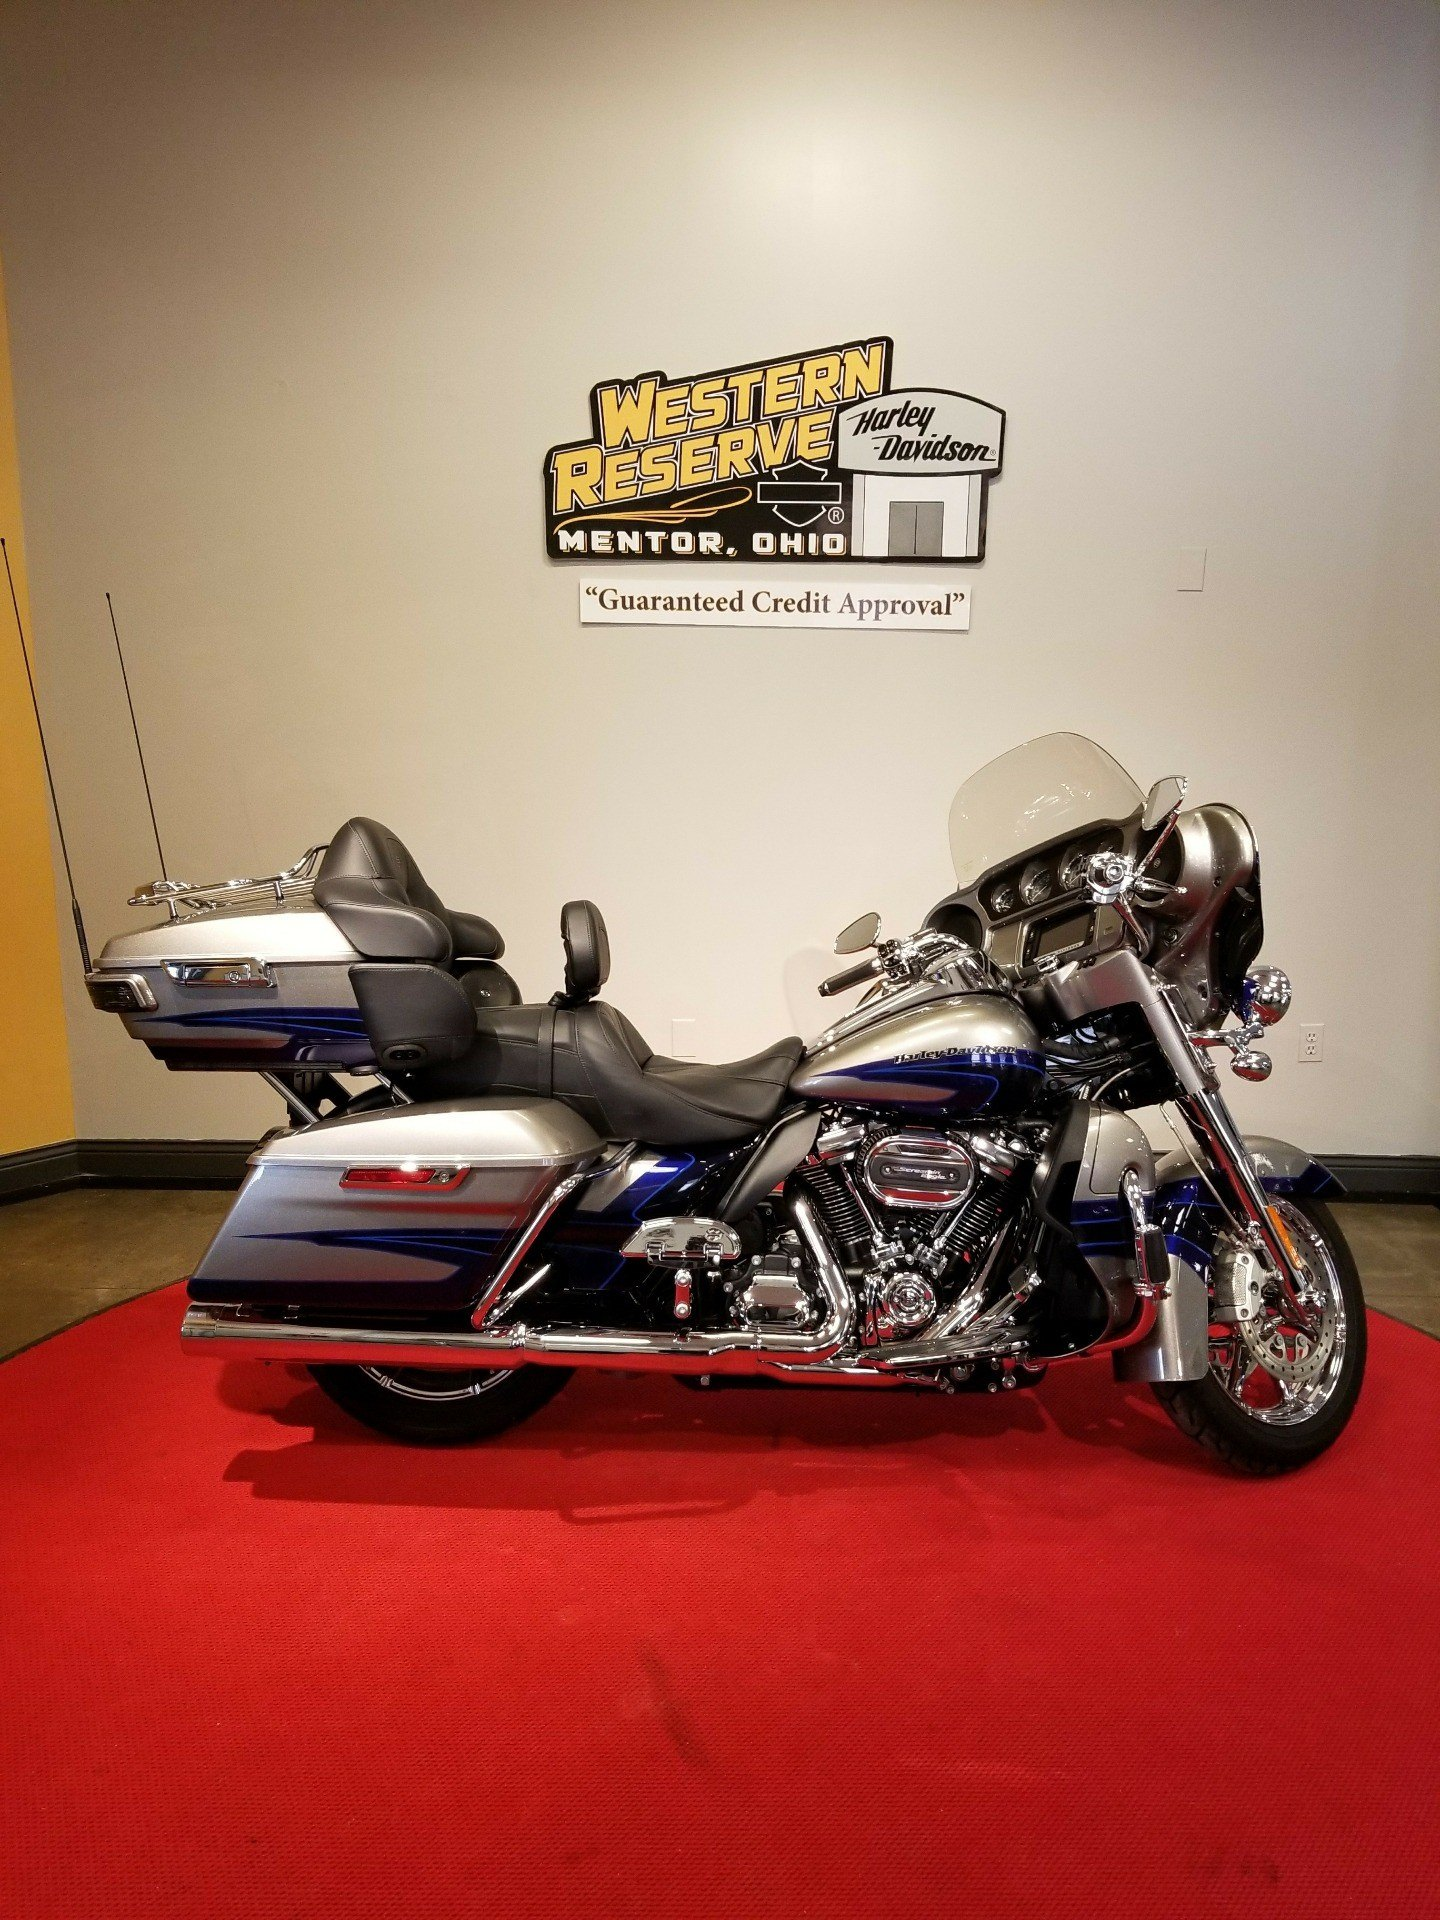 2017 Harley Davidson Cvo Limited In Mentor Ohio